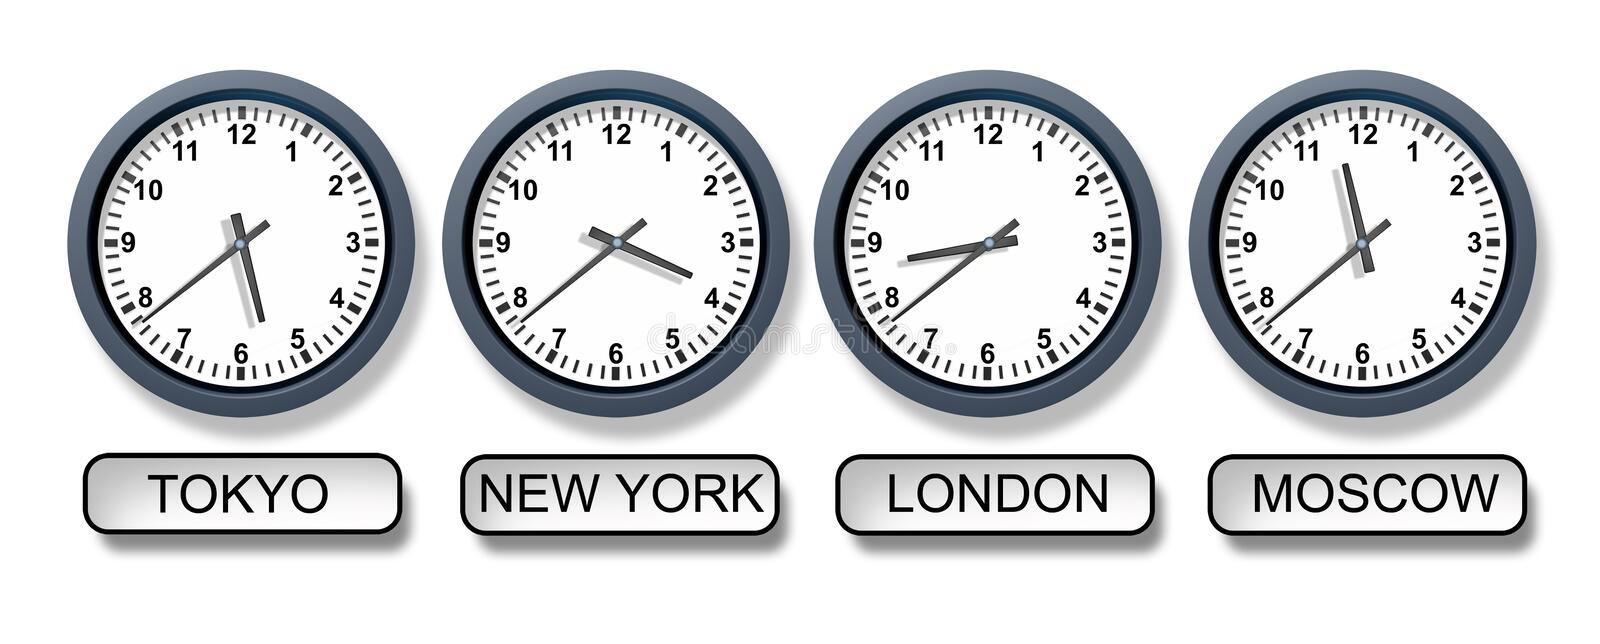 World Time Zone Clocks royalty free illustration